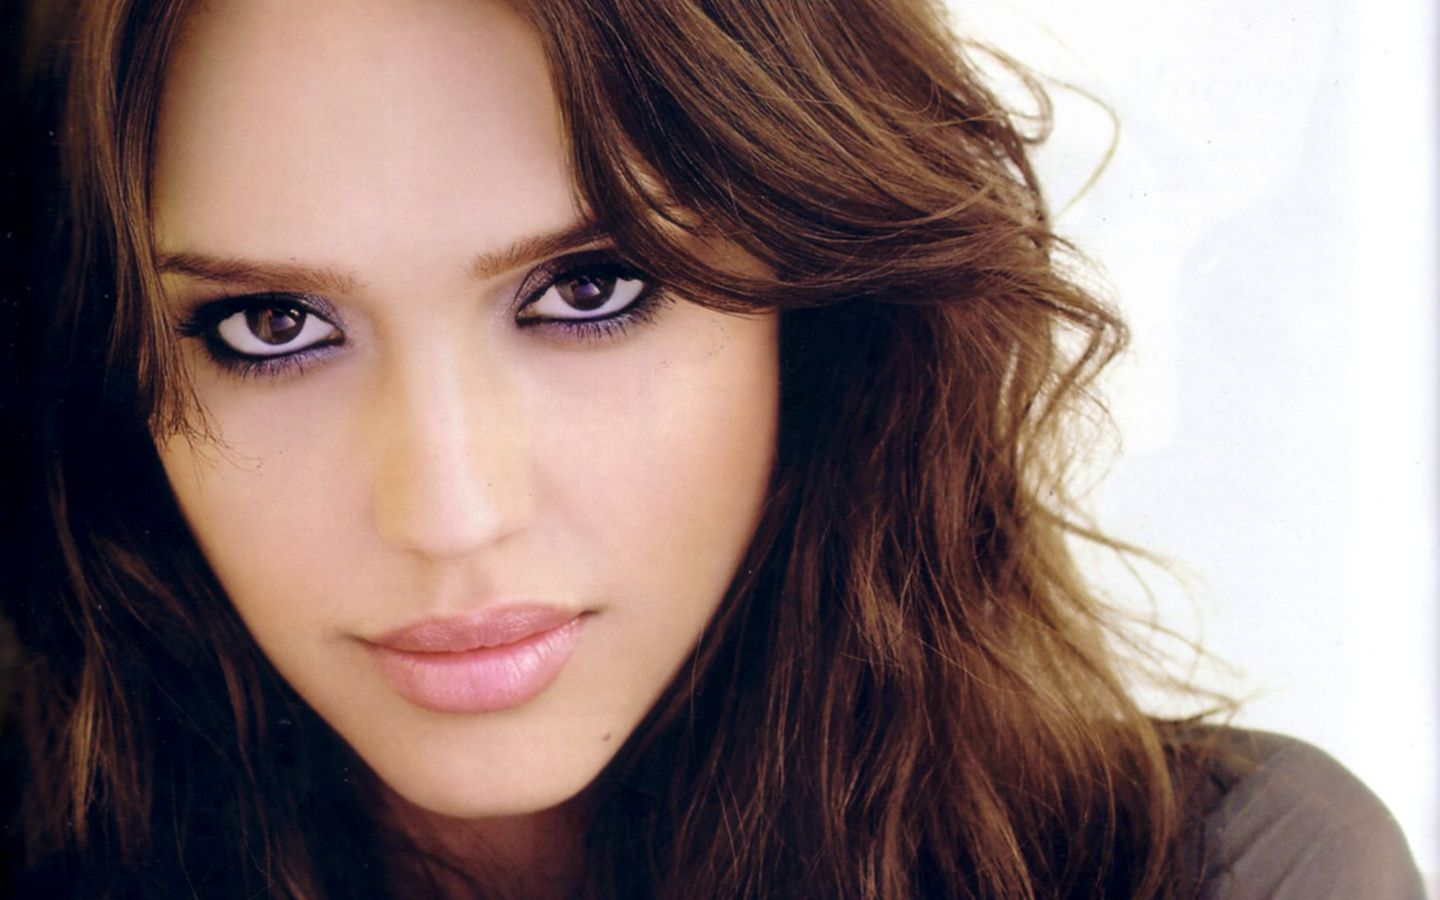 Pretty Jessica Alba Wallpaper